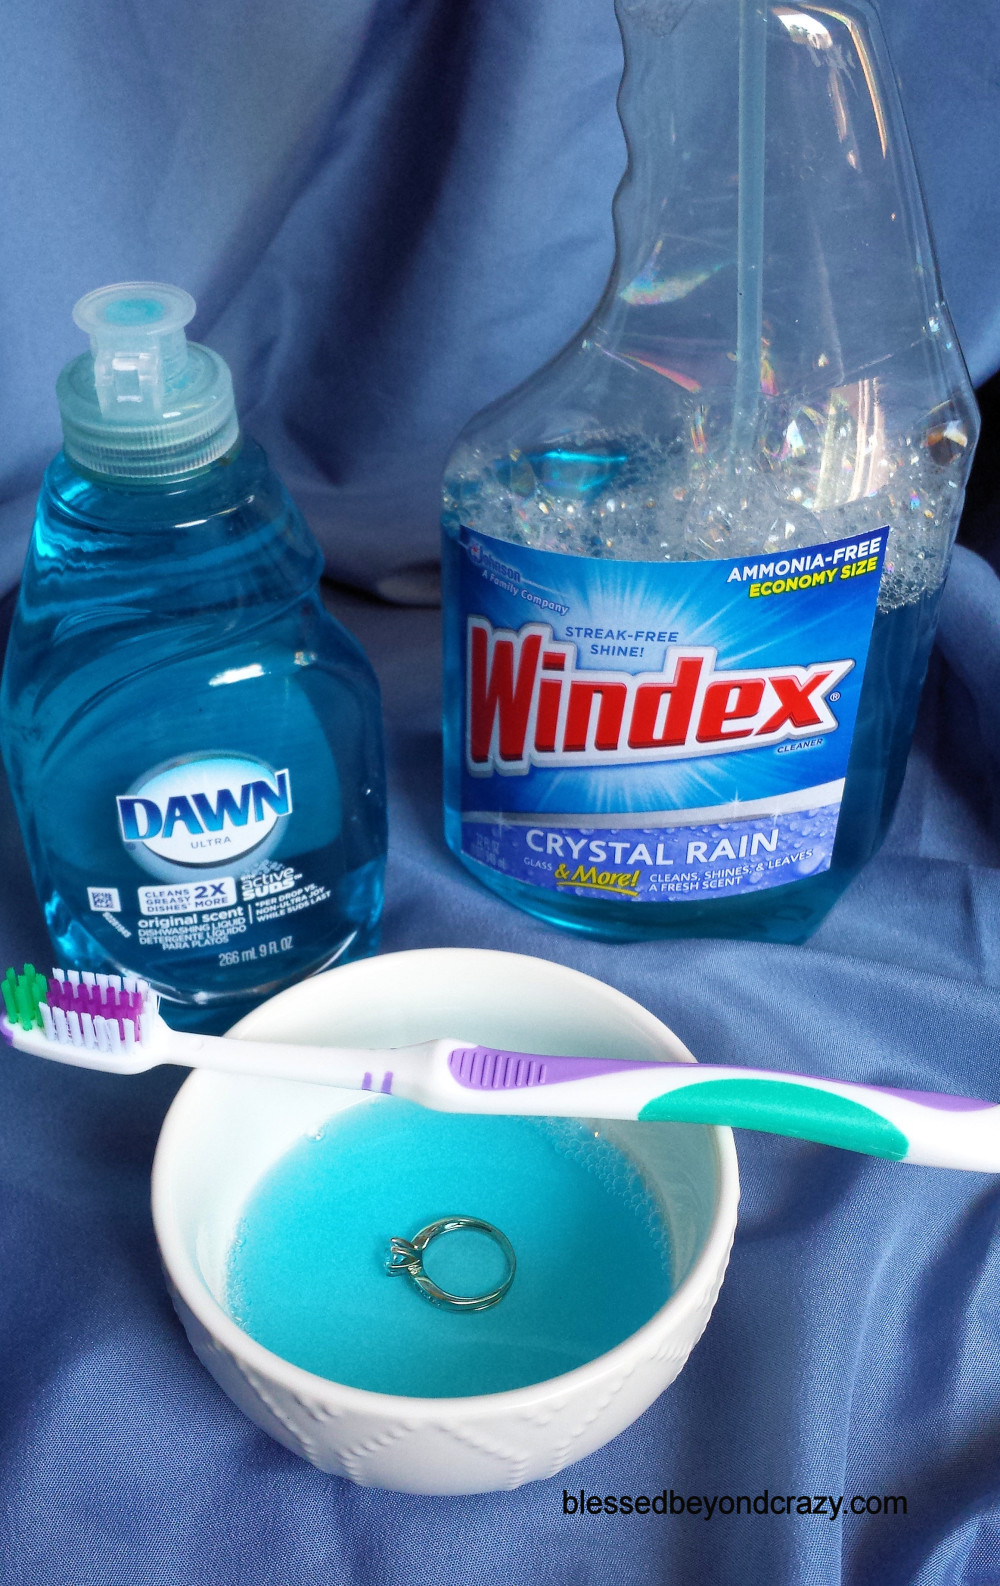 Here Is How I Have Been Cleaning My Diamond Wedding Ring For Years And It  Only Requires Two Ingredients I Simply Place A Couple Of Drops Of Dish  Detergent